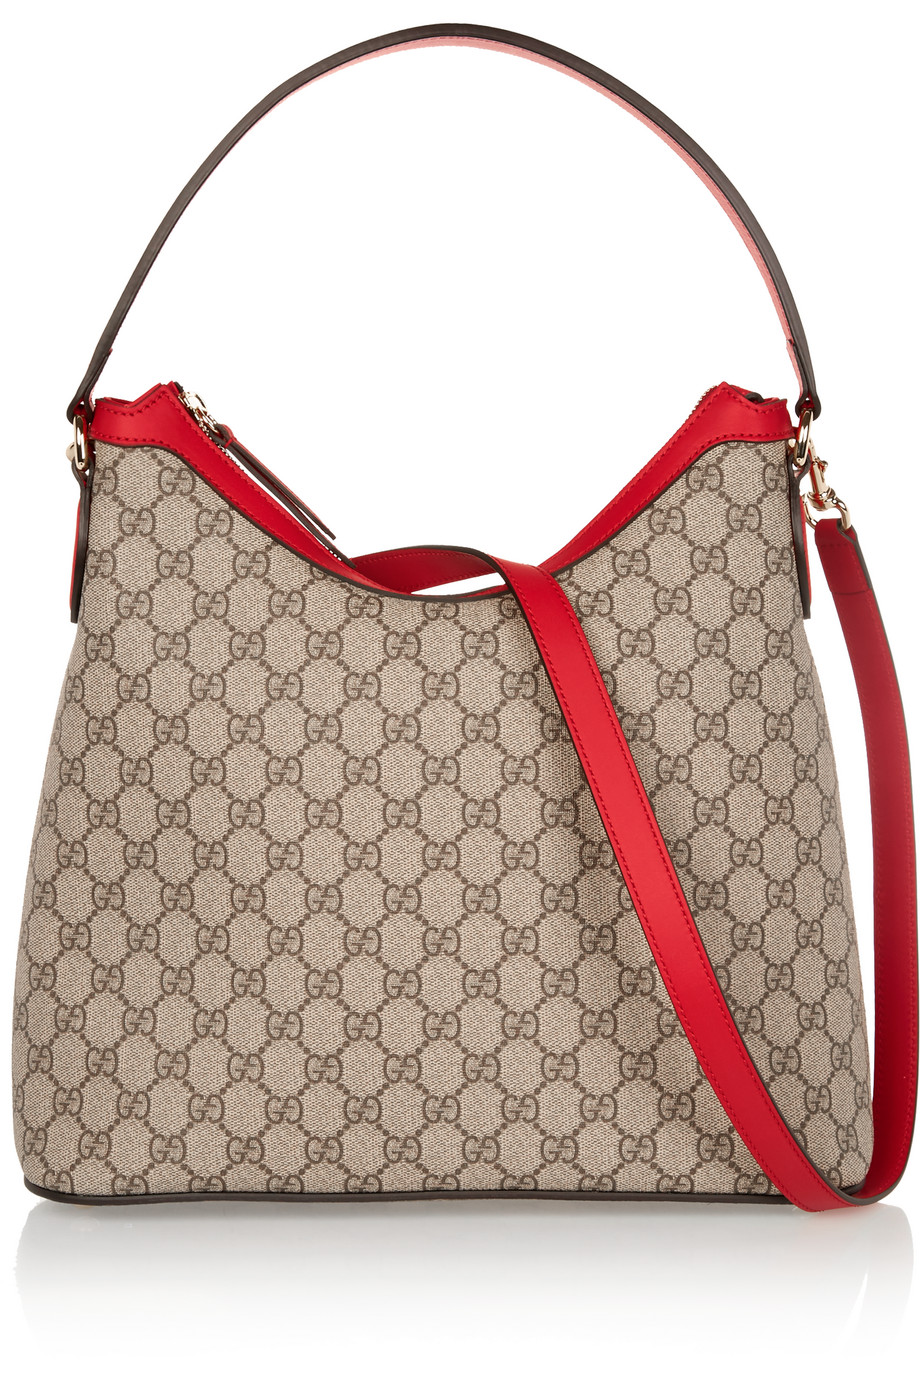 Gucci Linea A Hobo Leather-Trimmed Coated Canvas Shoulder Bag, Sand, Women's